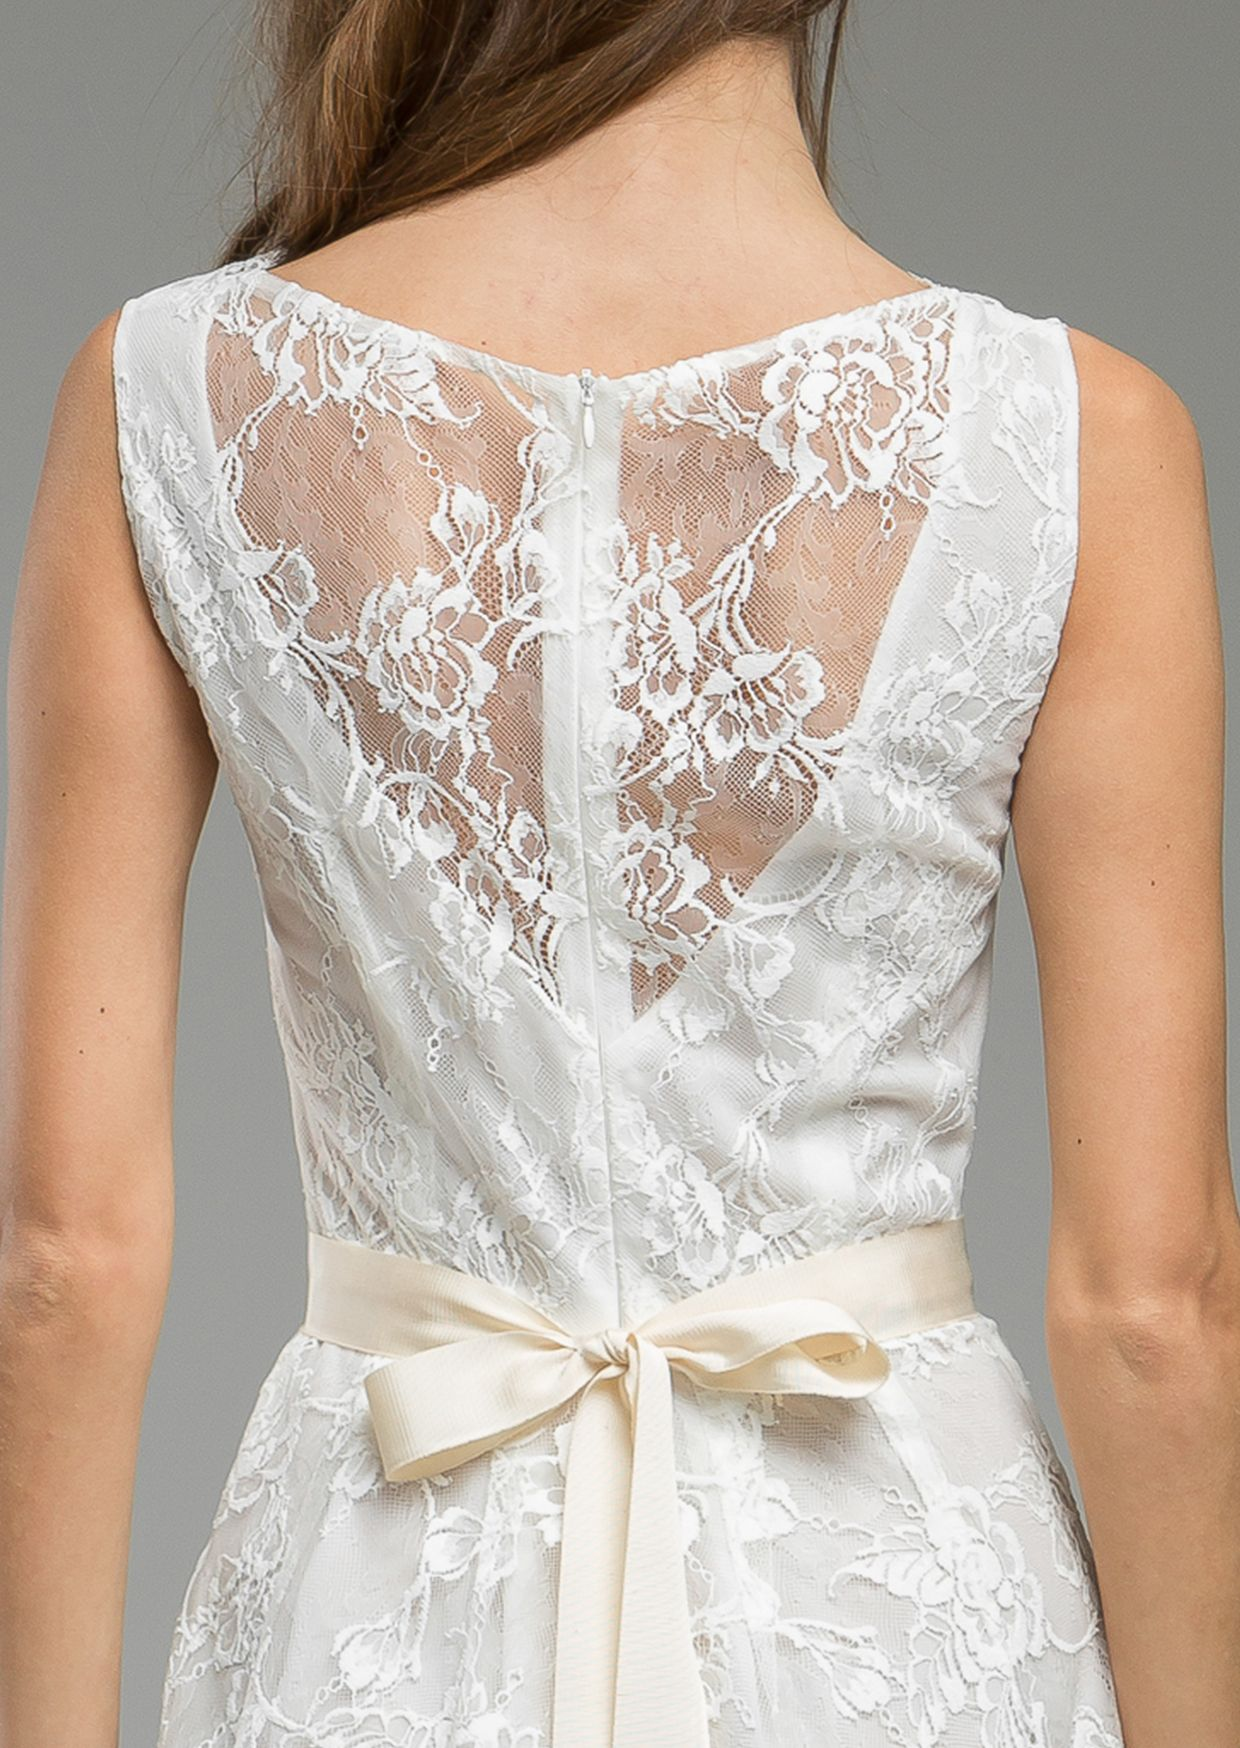 Sophisticated light ethereal contrasting with fine french lace and